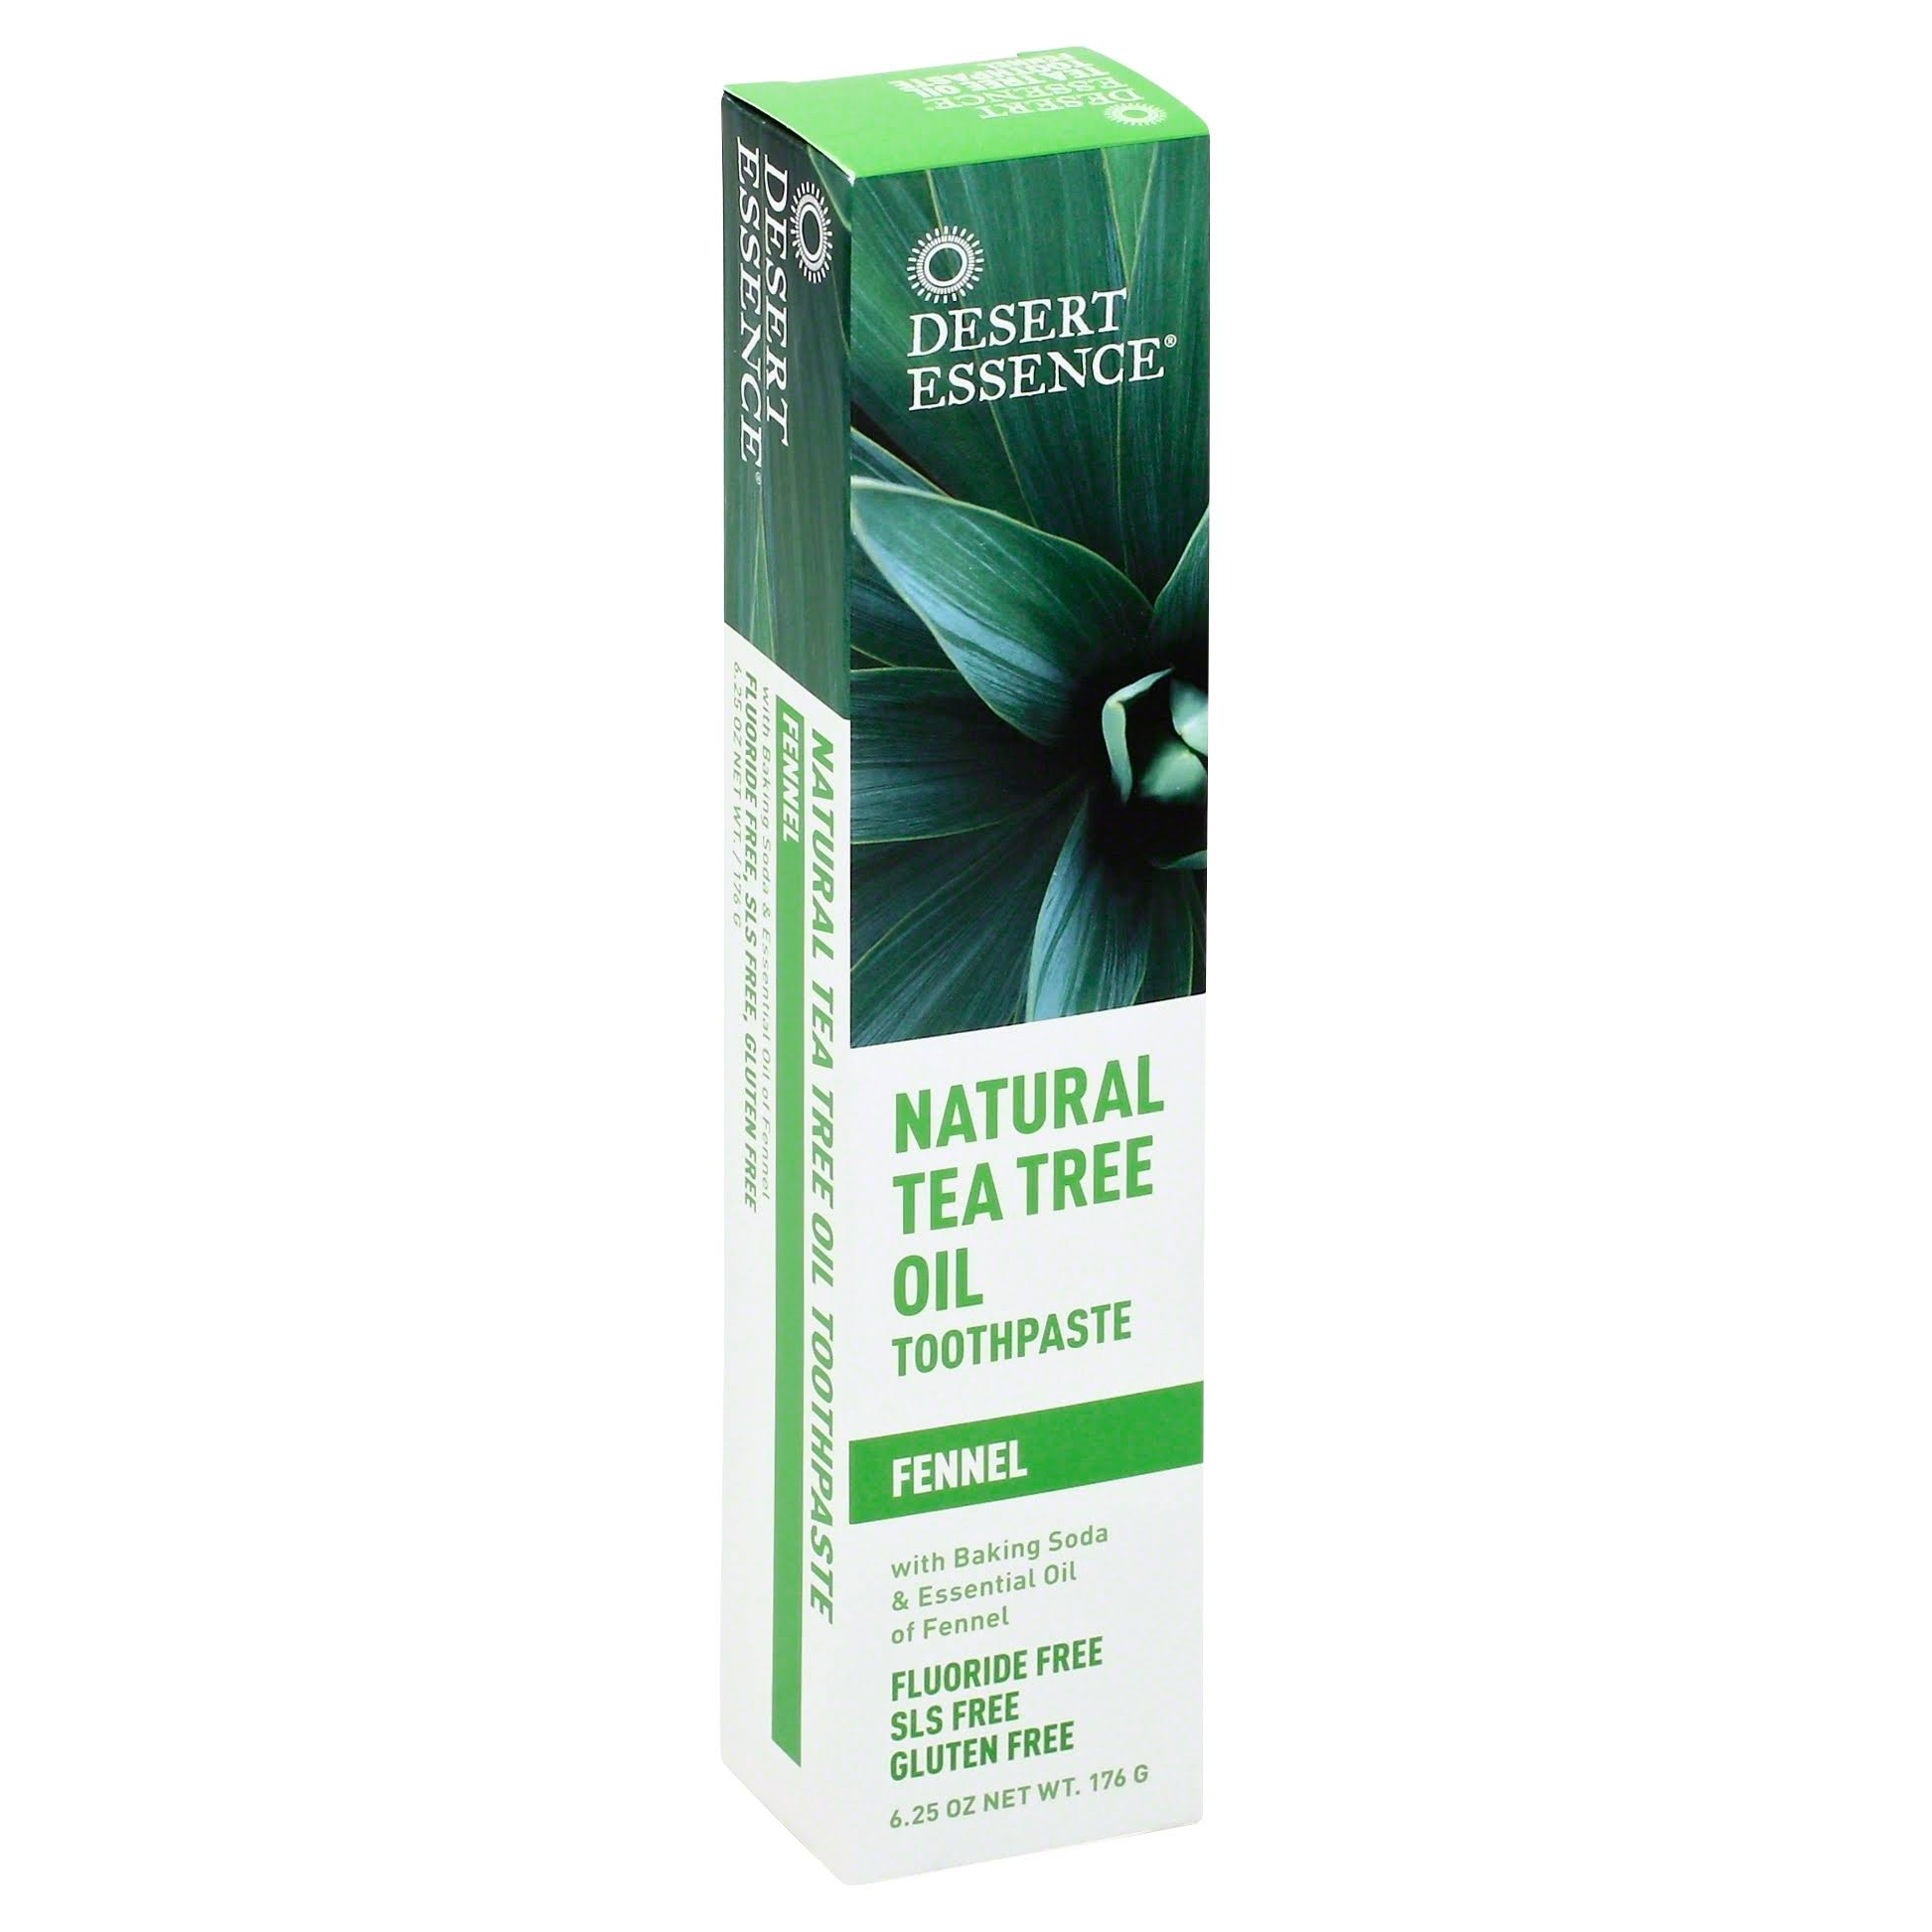 Desert Essence Natural Tea Tree Oil Toothpaste - 185ml